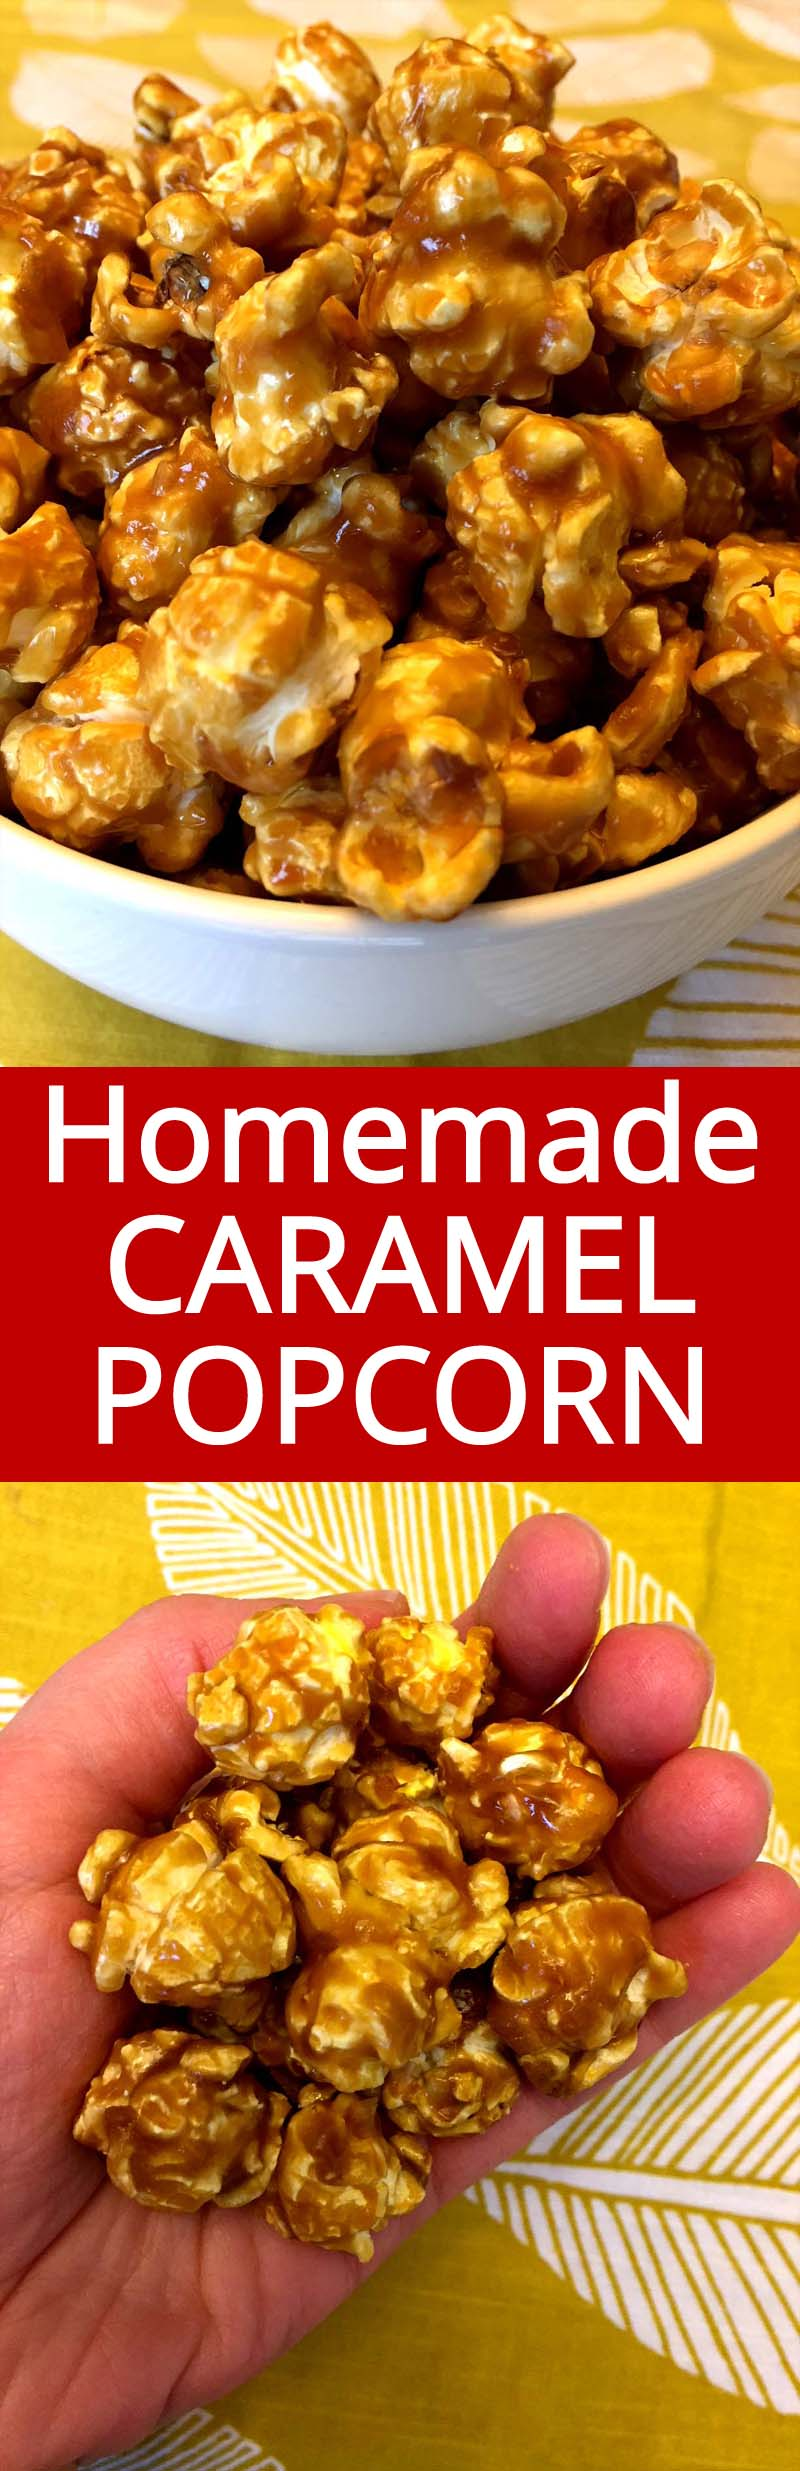 This homemade caramel corn is amazing! This is the only caramel corn recipe you'll ever need!